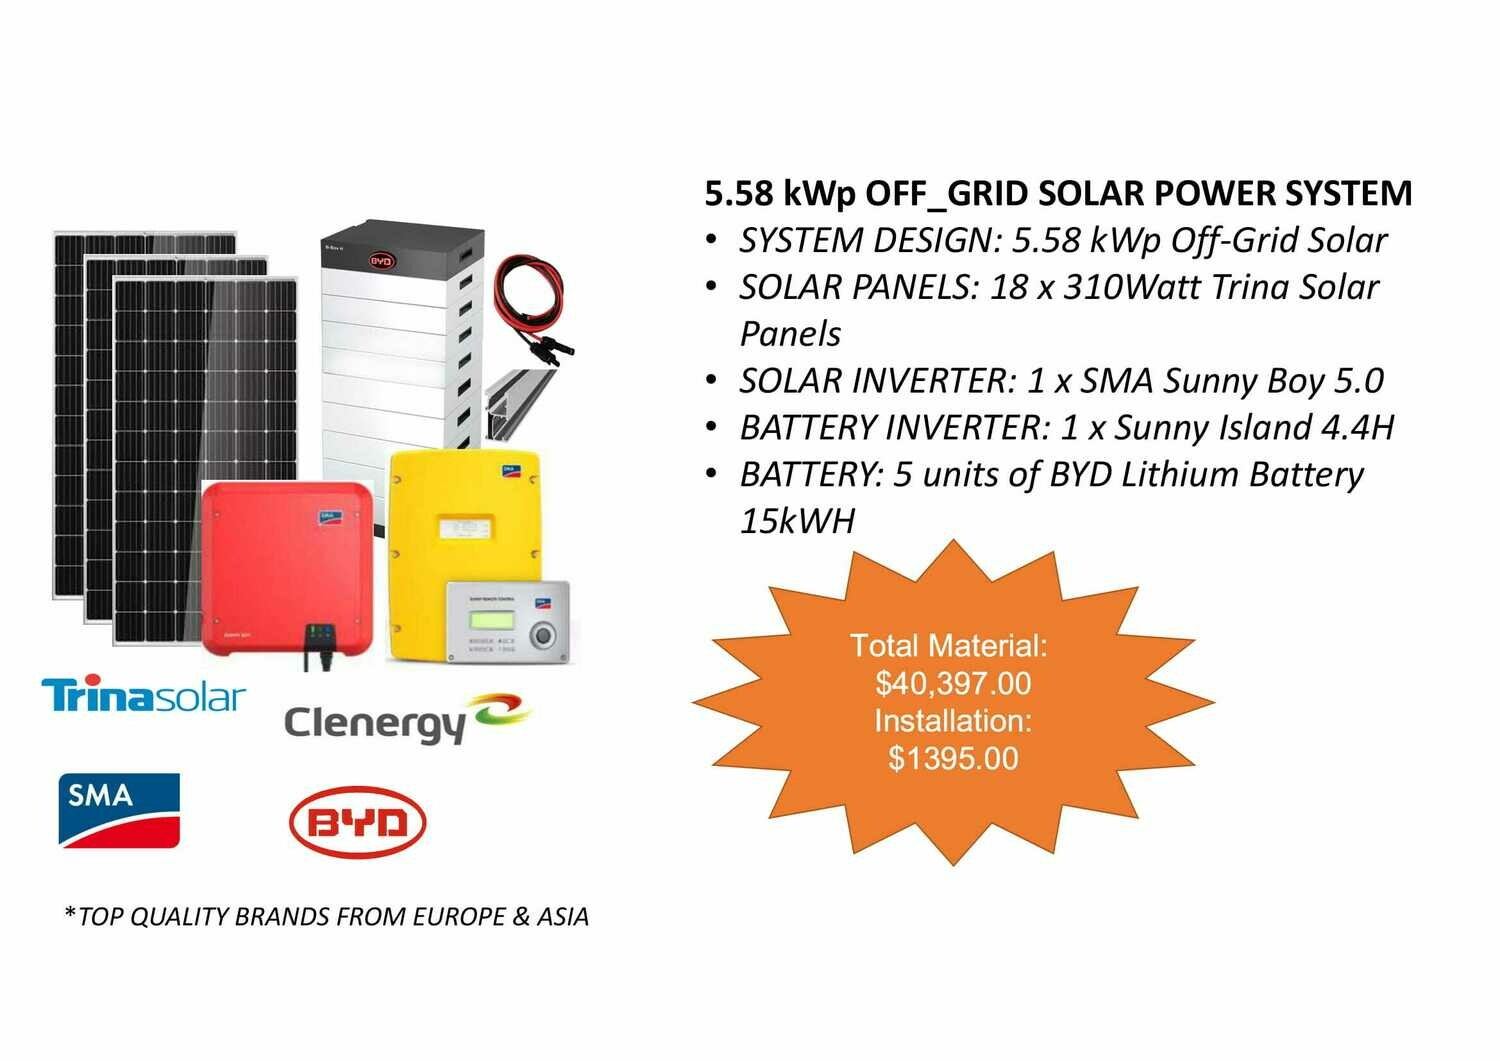 5.58kWp Off Grid Solar Power System